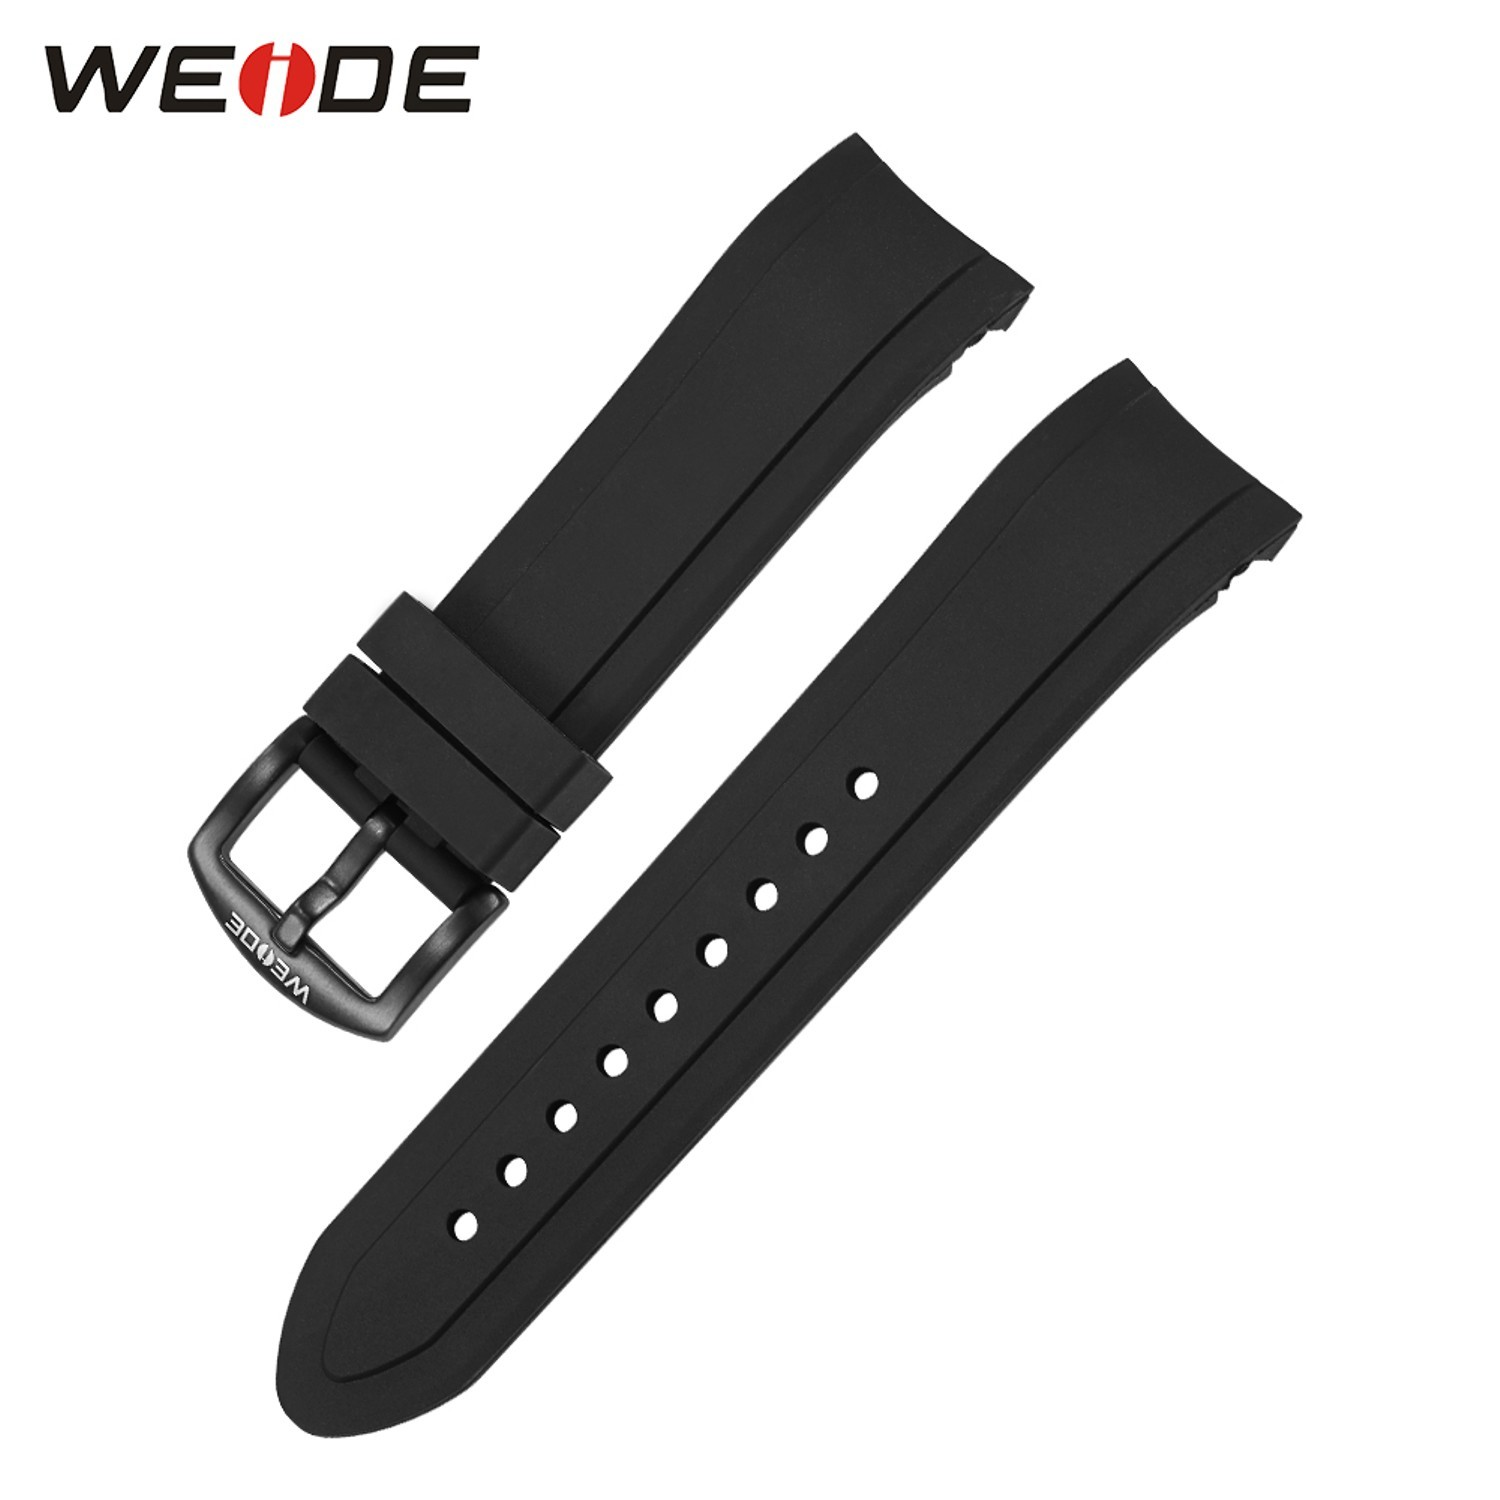 WEIDE-Luxury-Brand-Men-s-Watch-PU-Strap-With-Stainless-Steel-Buckle-Black-Color-Band-Width_1500x1500_STRETCH_408.jpg